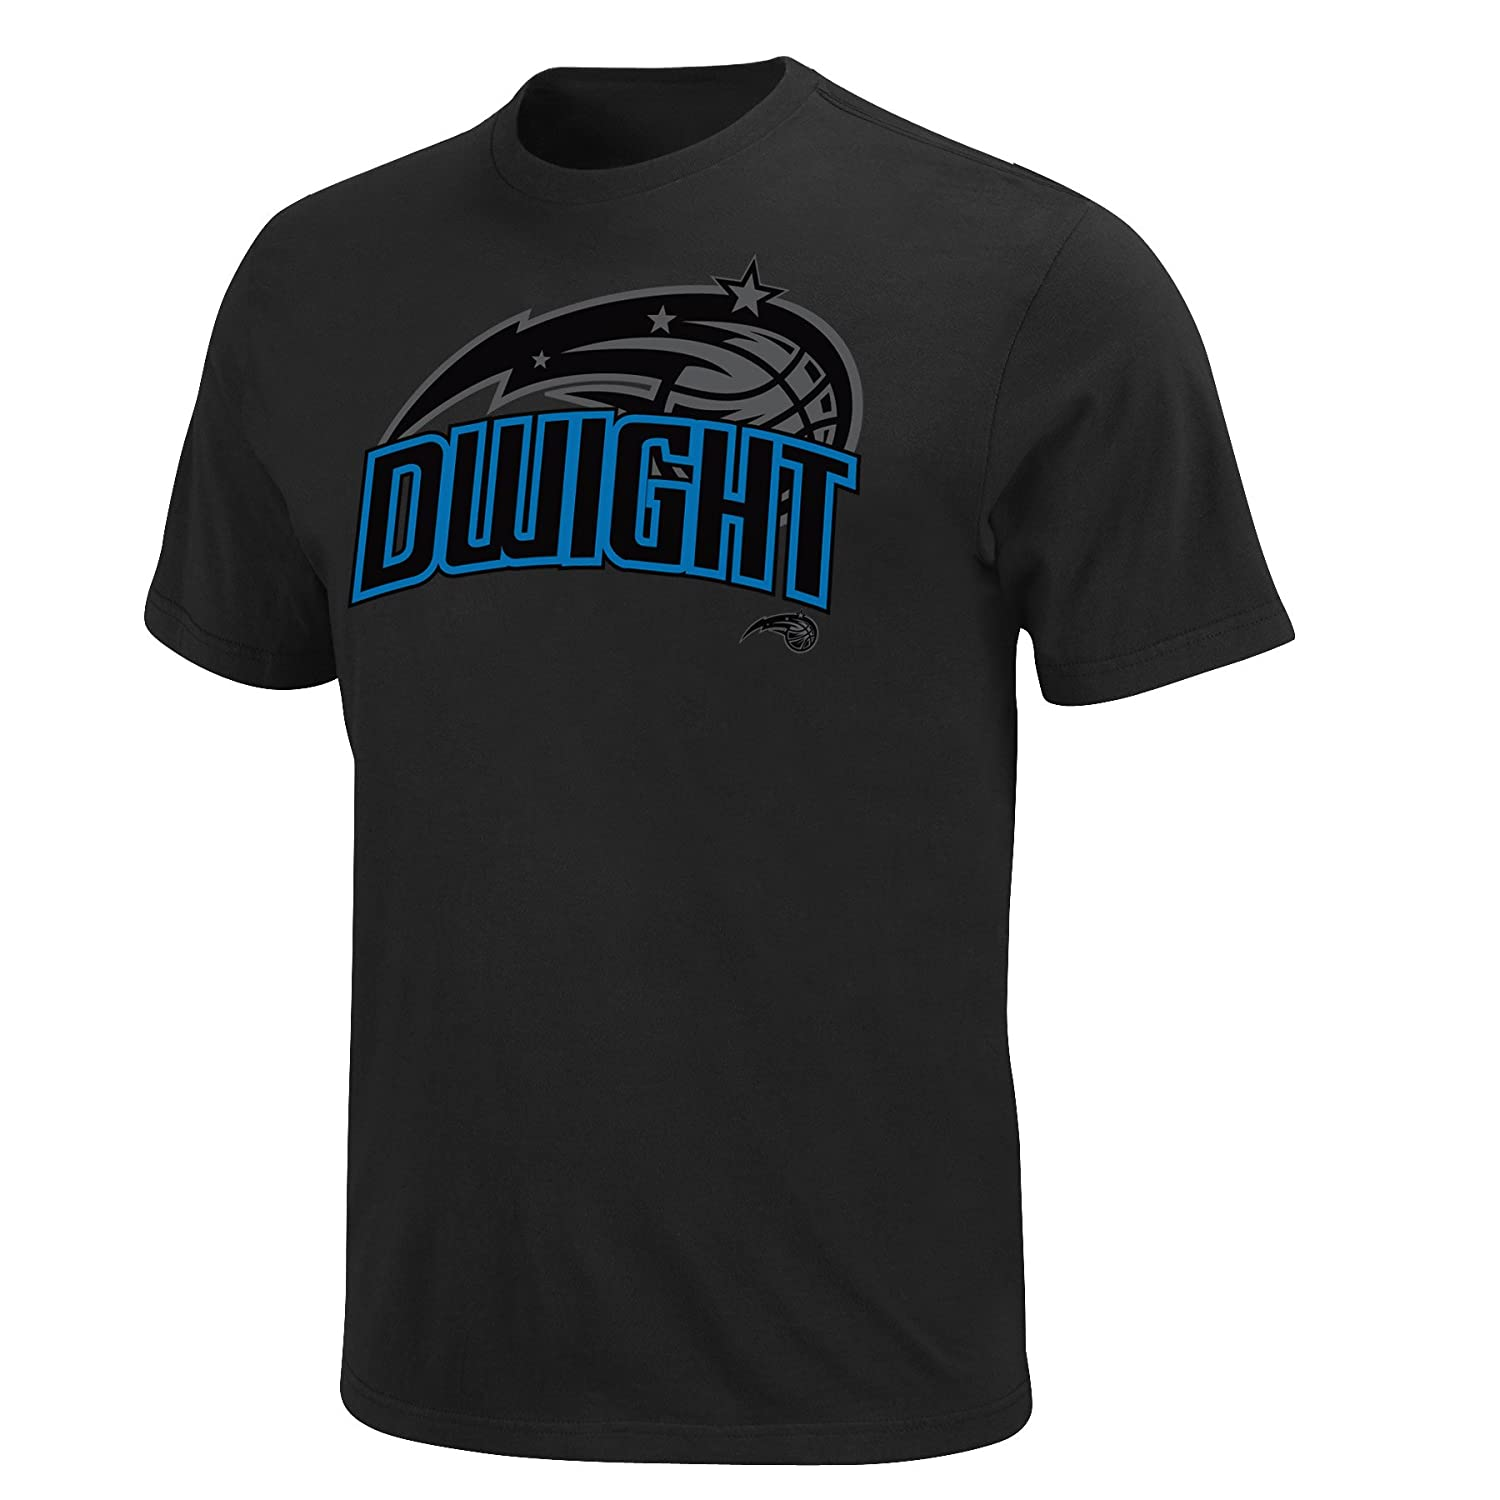 NBA Orlando Magic Dwight Howard famoso camiseta, hombre, negro, Medium: Amazon.es: Deportes y aire libre